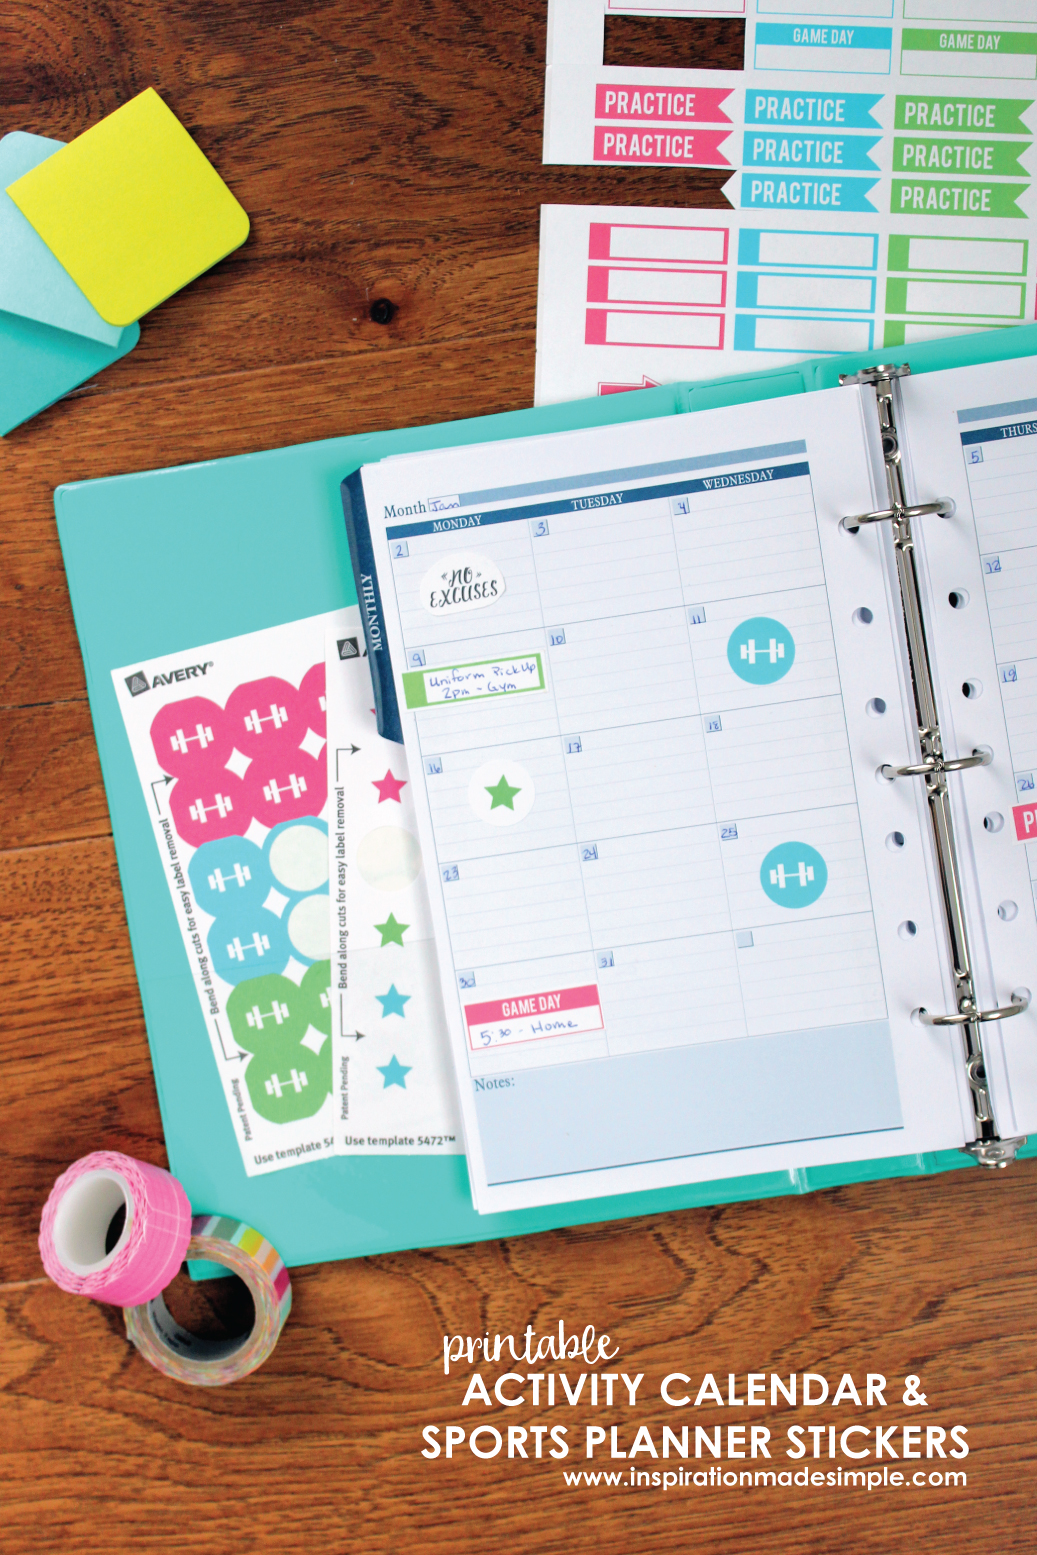 Printable Kids Activity Calendar and Sports Planner Stickers